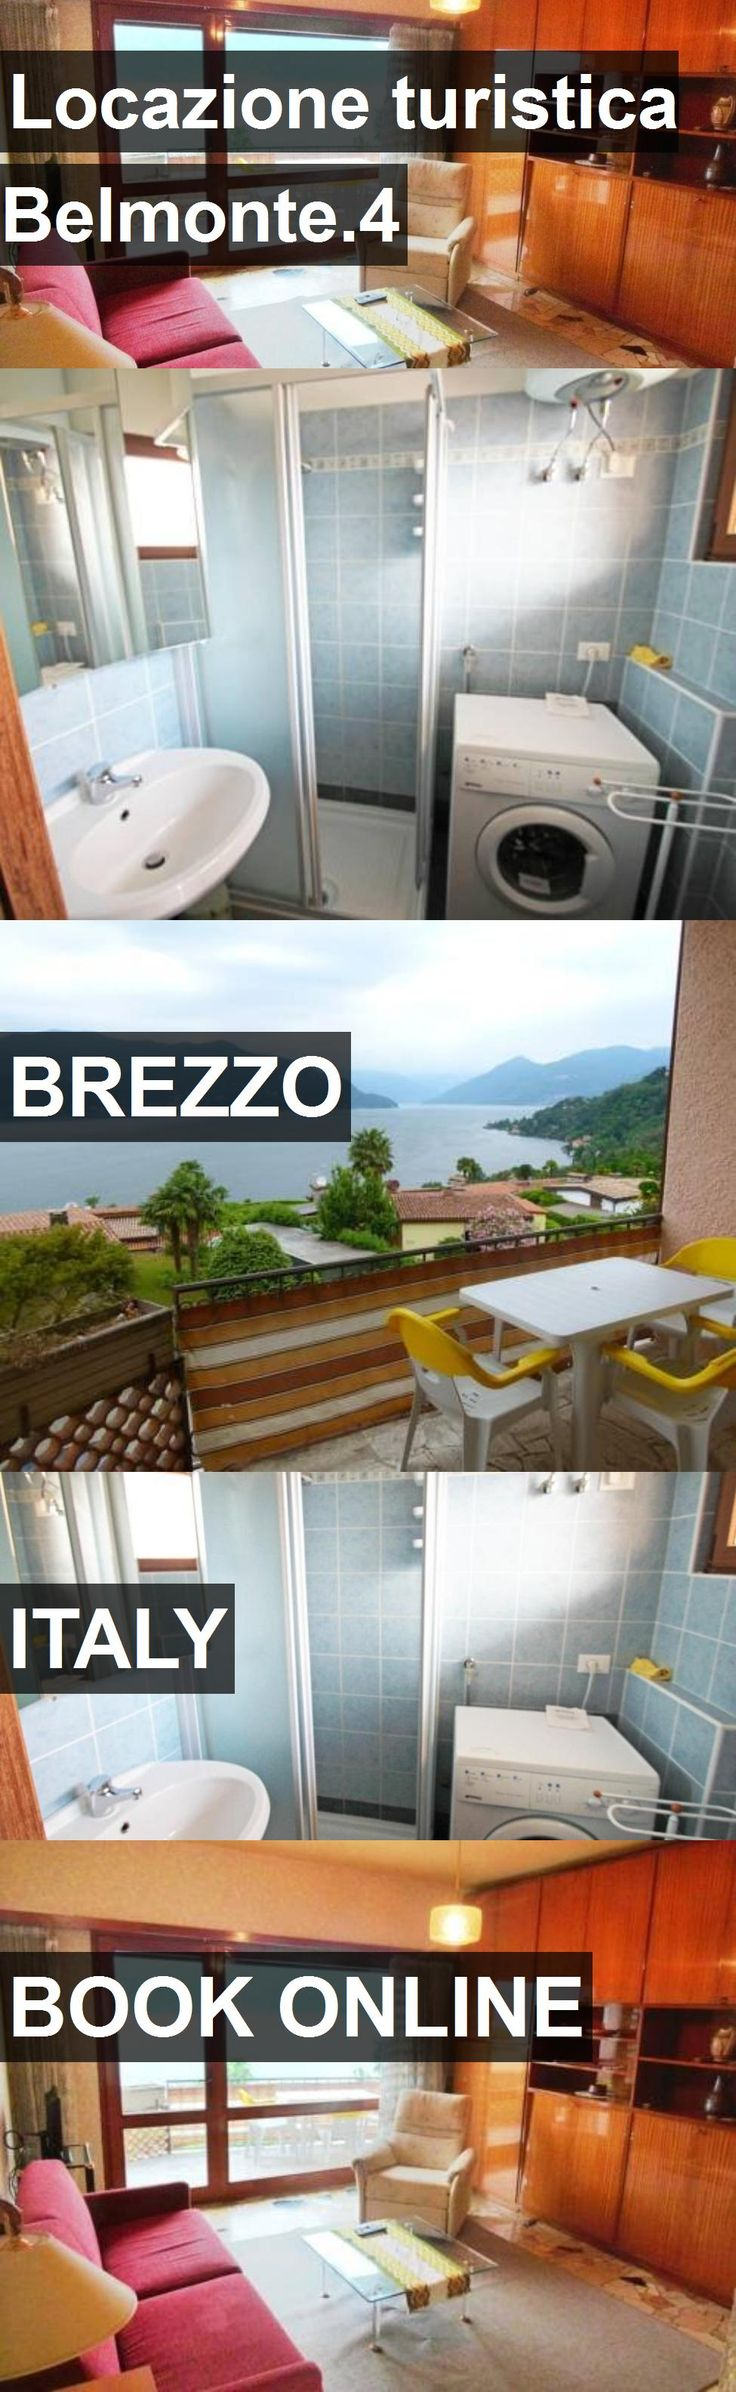 Hotel Locazione turistica Belmonte.4 in Brezzo, Italy. For more information, photos, reviews and best prices please follow the link. #Italy #Brezzo #travel #vacation #hotel